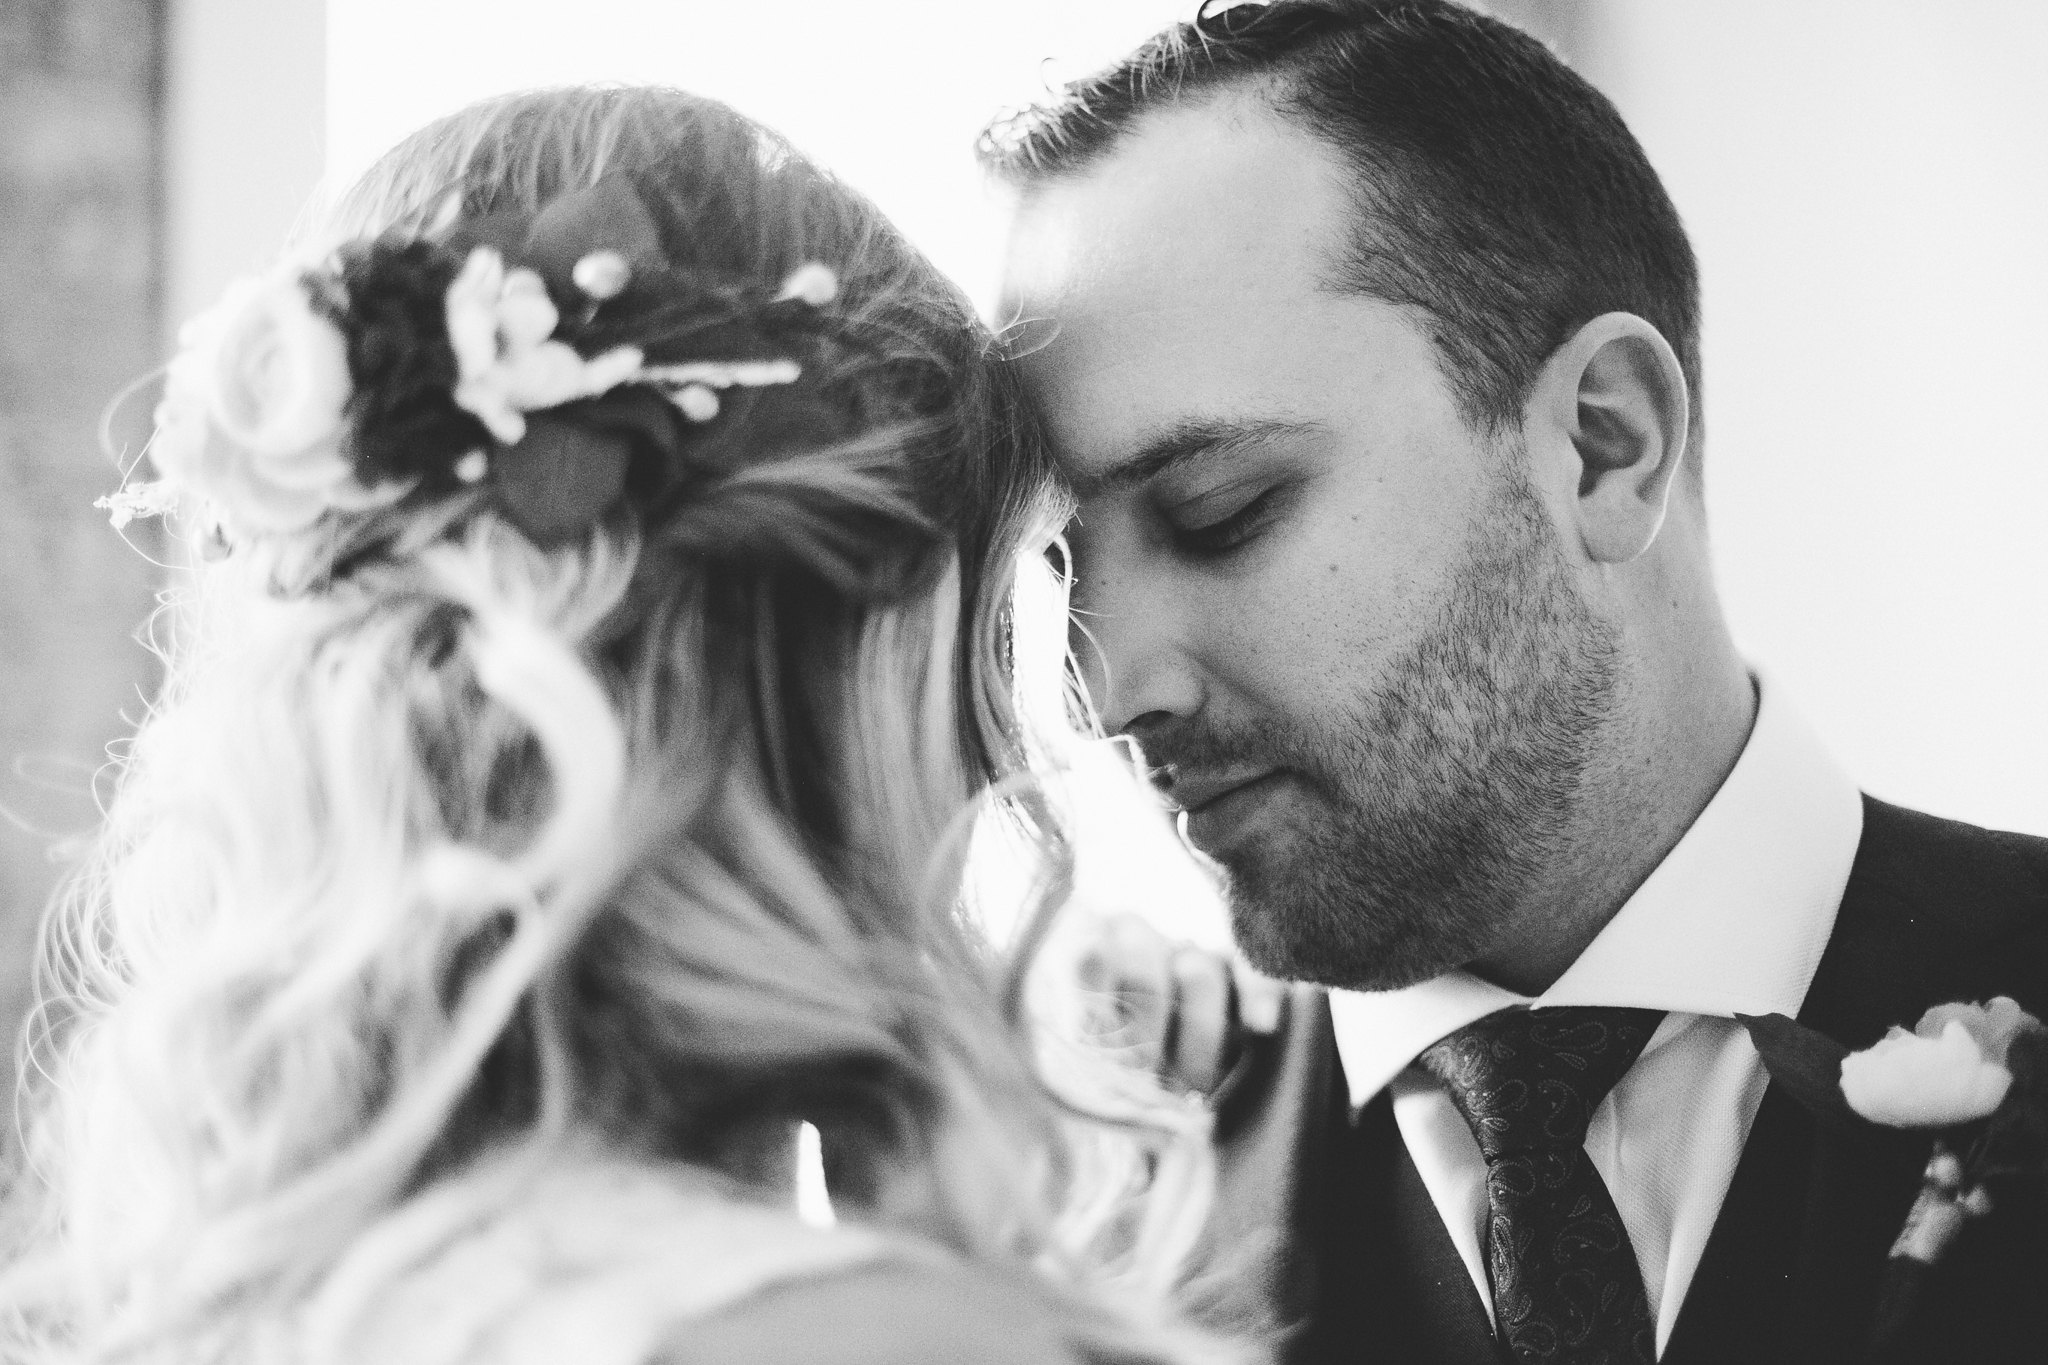 lethbridge-photographer-love-and-be-loved-photography-designed-to-dwell-wedding-katie-kelly-photo-image-picture-35.jpg